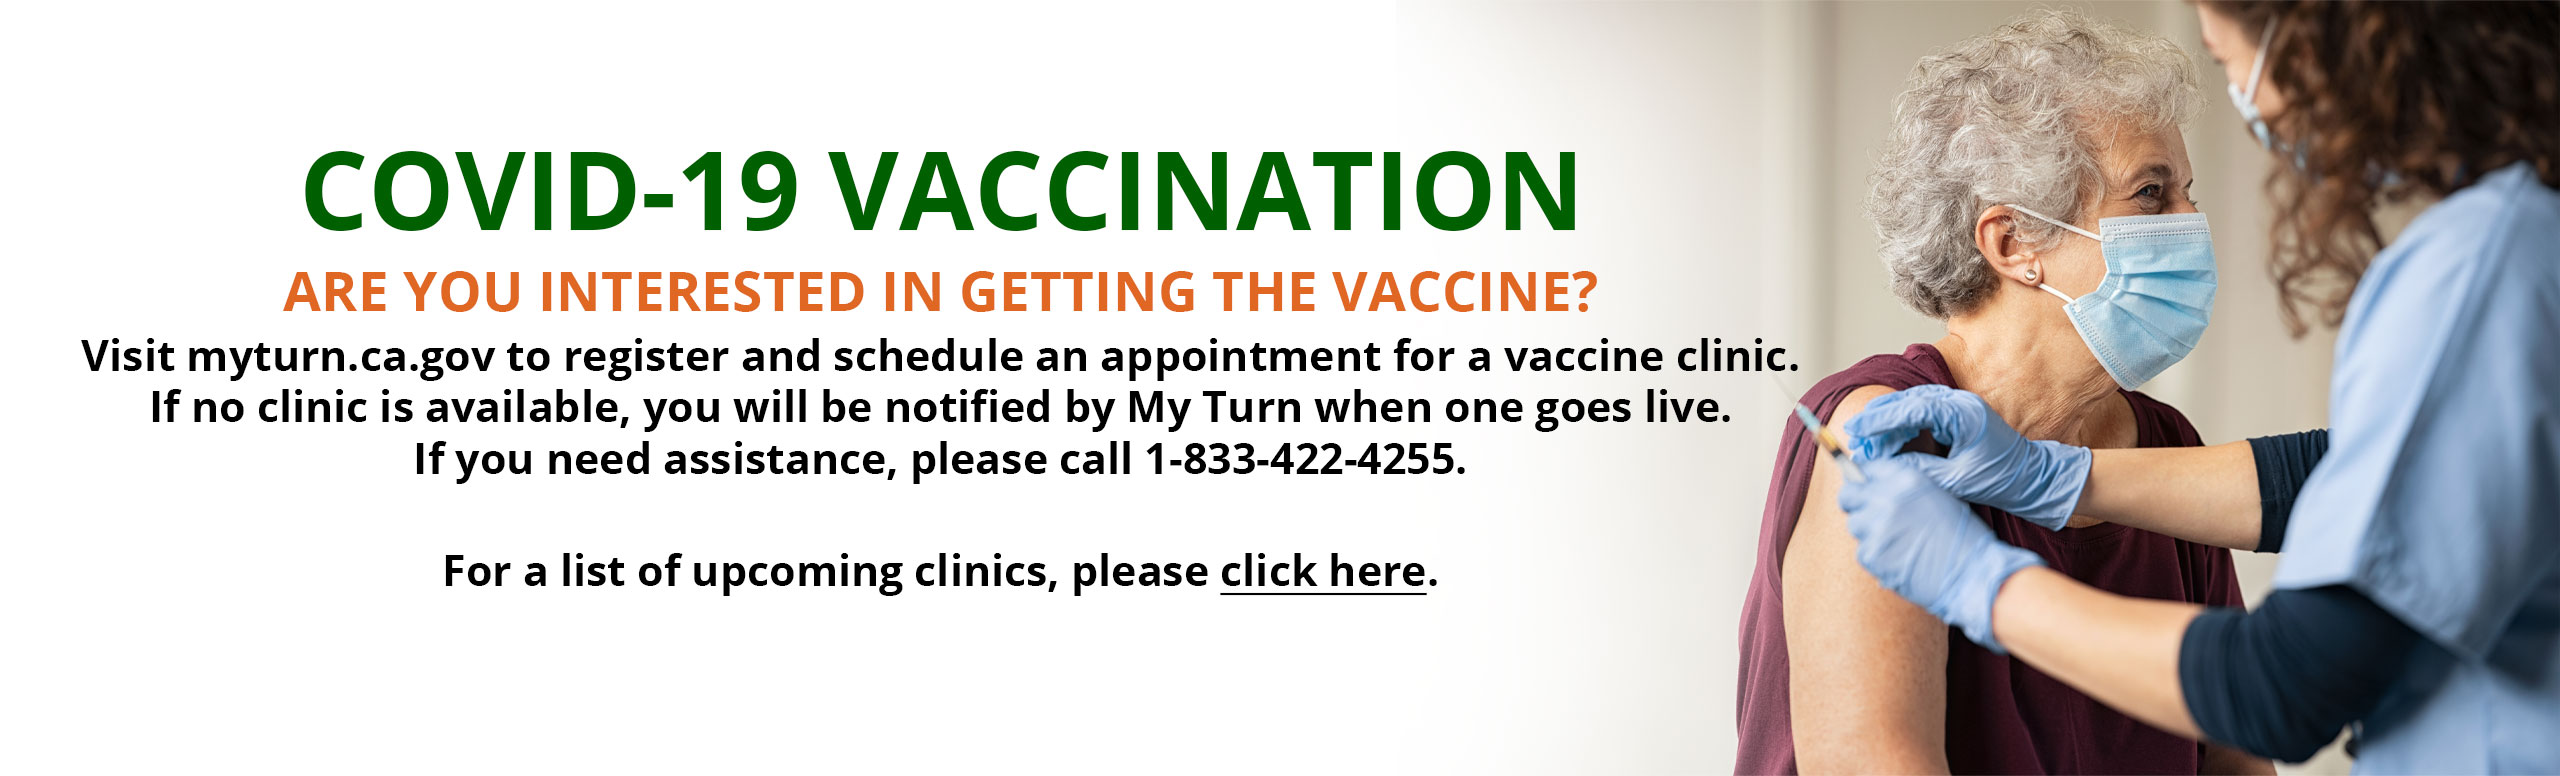 COVID-19 VACCINATION ARE YOU INTERESTED IN GETTING THE VACCINE?  Visit myturn.ca.gov to register and schedule an appointment for a vaccine clinic. If no clinic is available, you will be notified by My Turn when one goes live. If you need assistance, please call 1-833-422-4255.   July Clinics:  Thursdays at the Community Health Center (5300 49 N, Mariposa) from 9:00 - 11:00 am for the Pfizer, Moderna, and Johnson & Johnson vaccines.